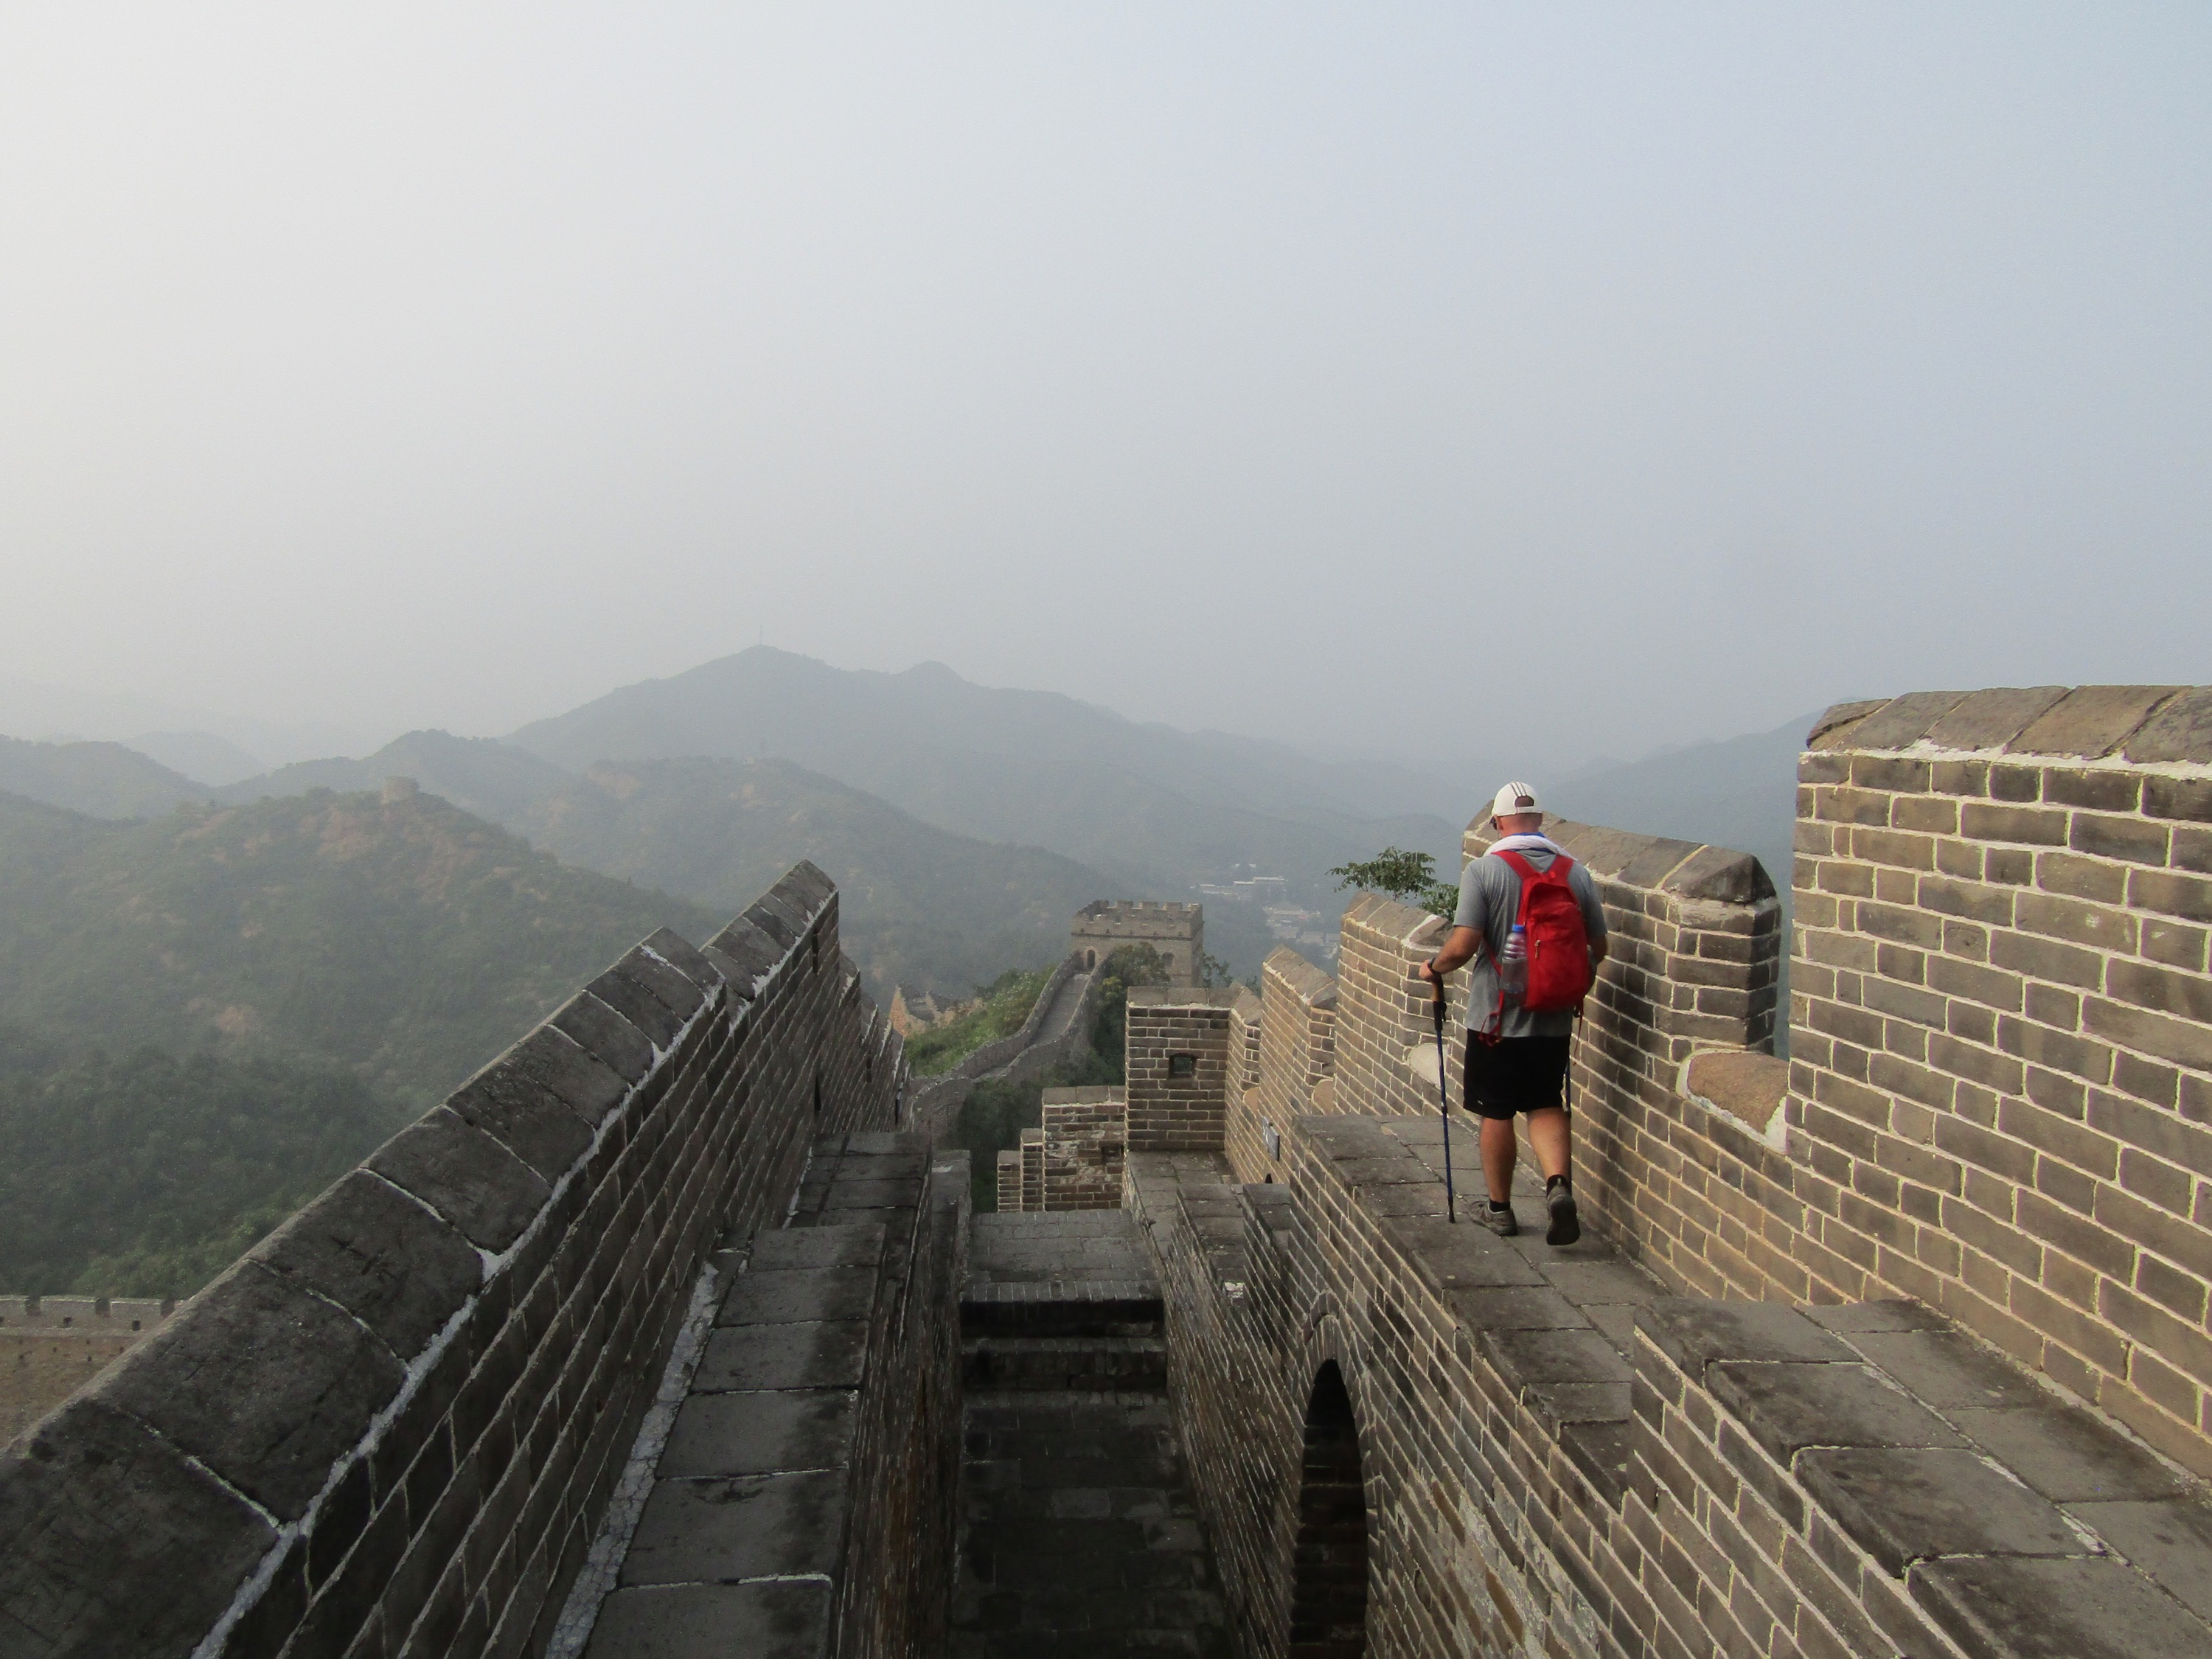 Some parts of the wall have narrow elevated walkways, but with enough room to safely cross.